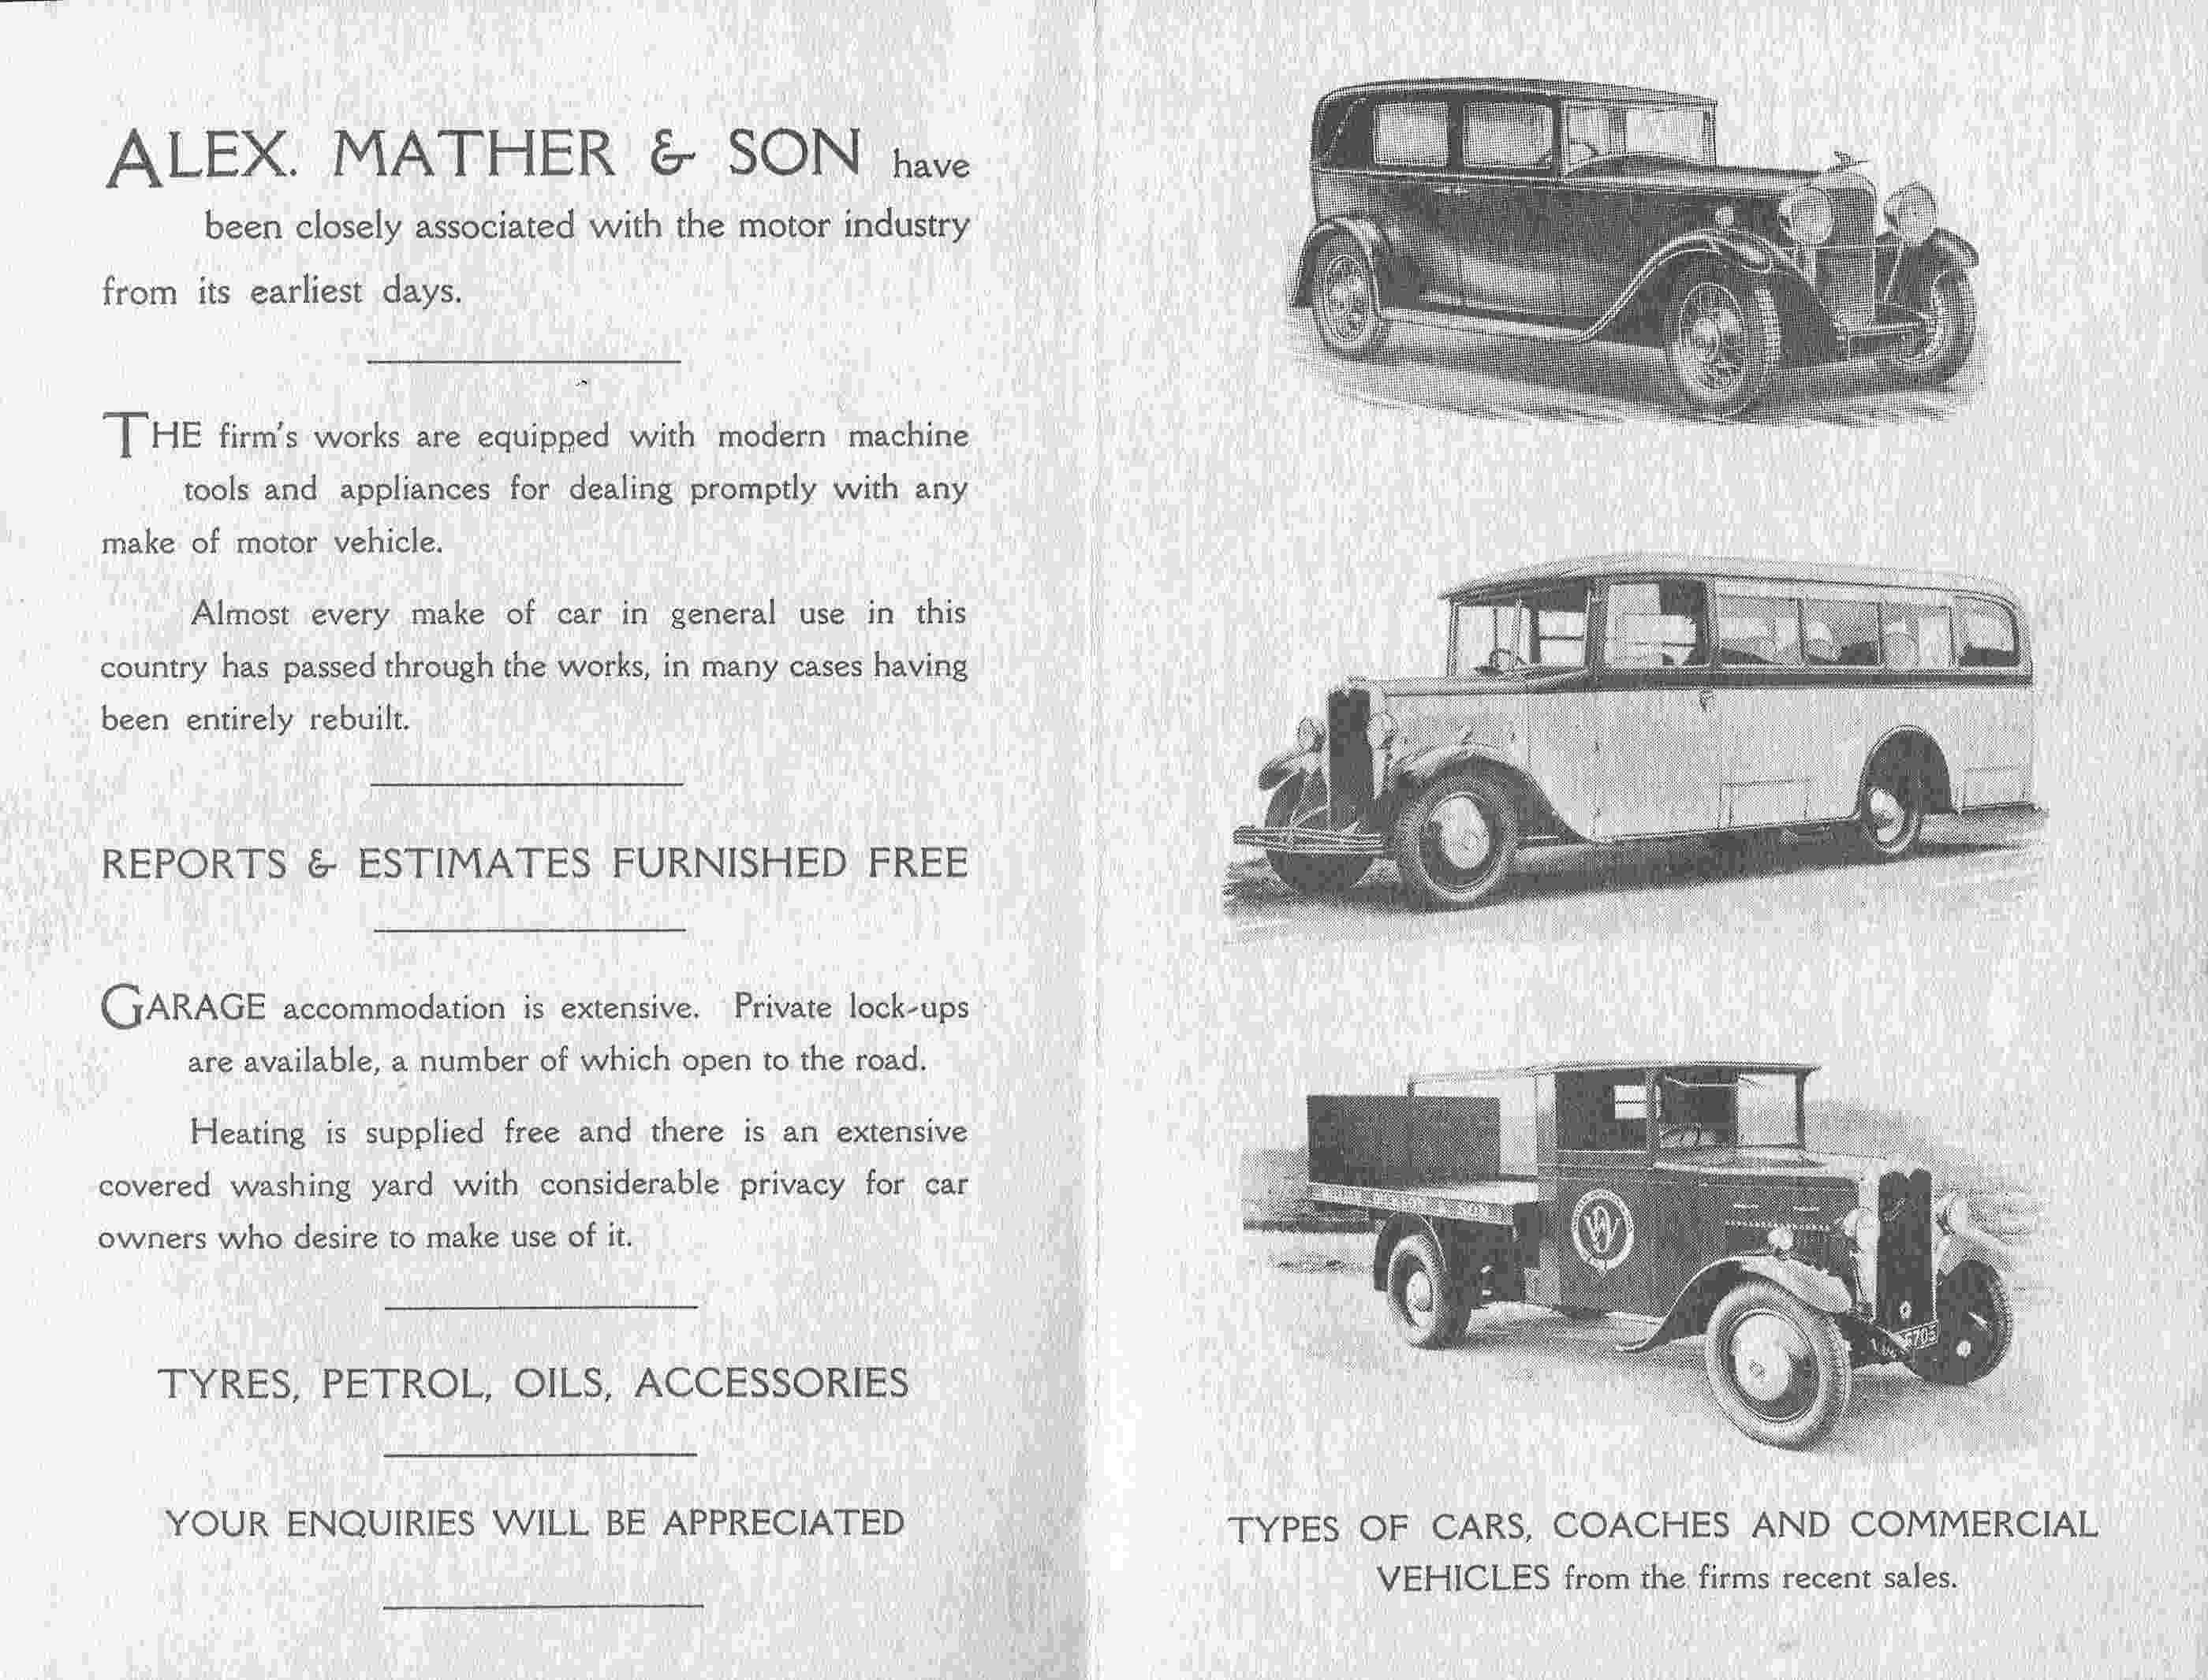 Alex Mather & Son Services Leaflet c.1930